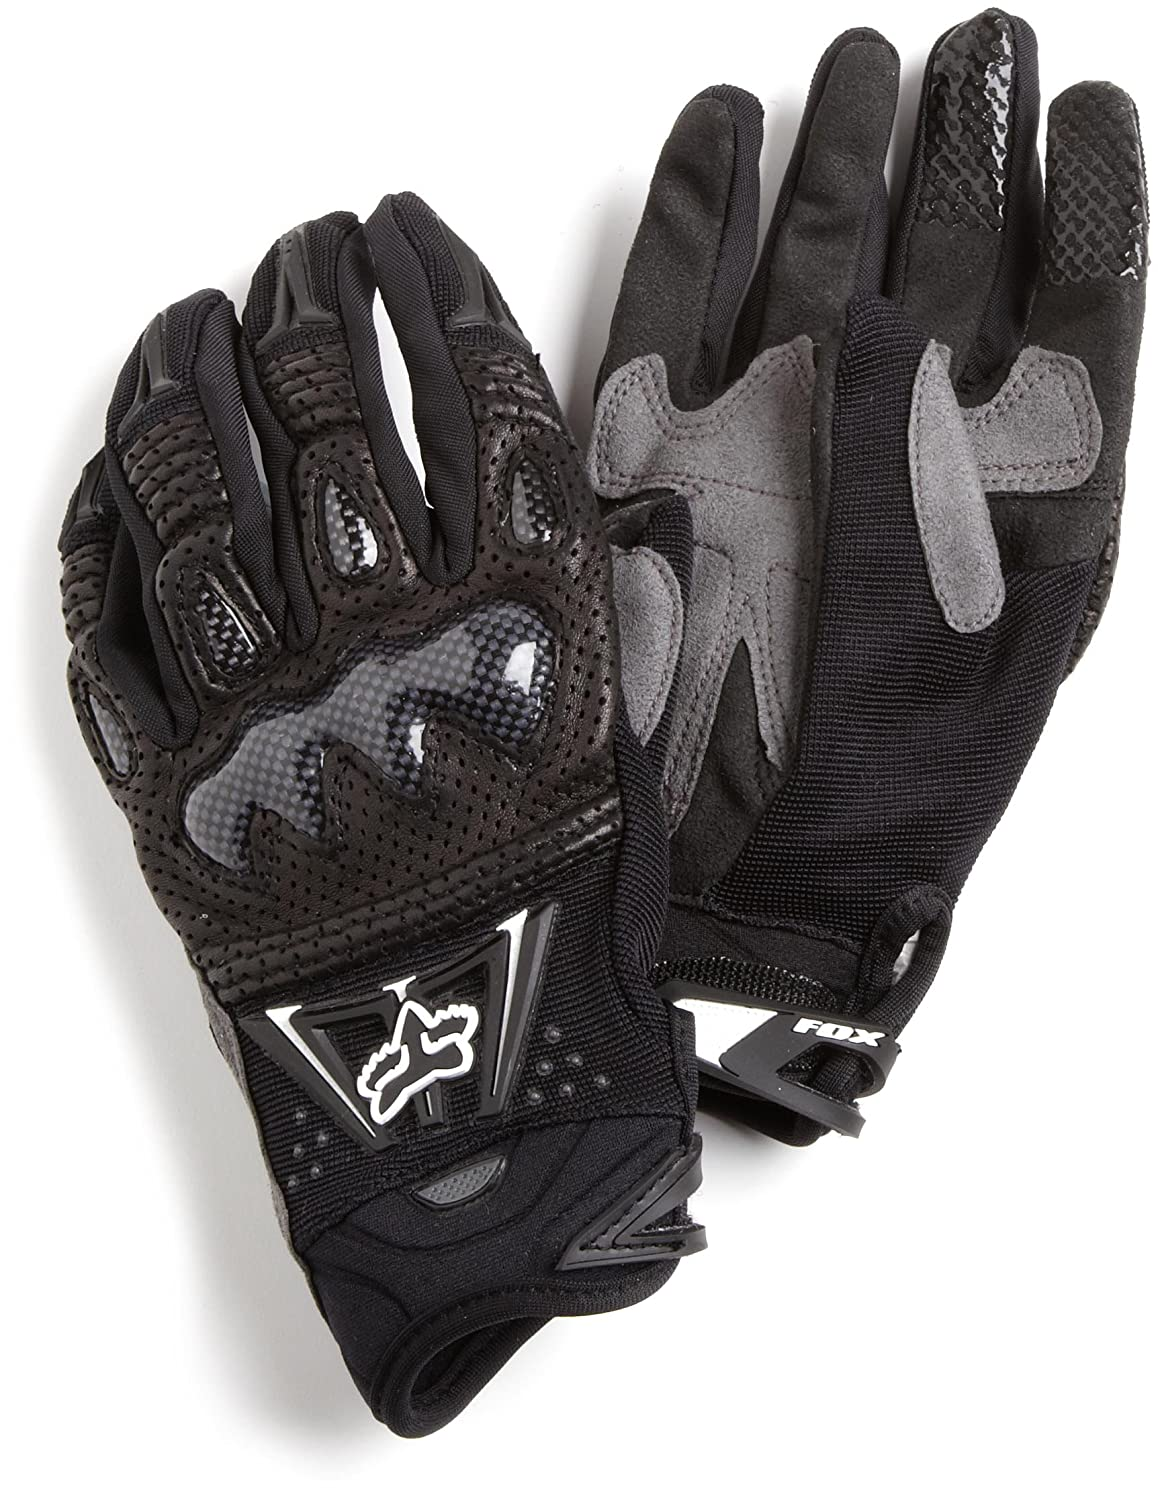 Motorcycle gloves ratings - Best Motorcycle Gloves